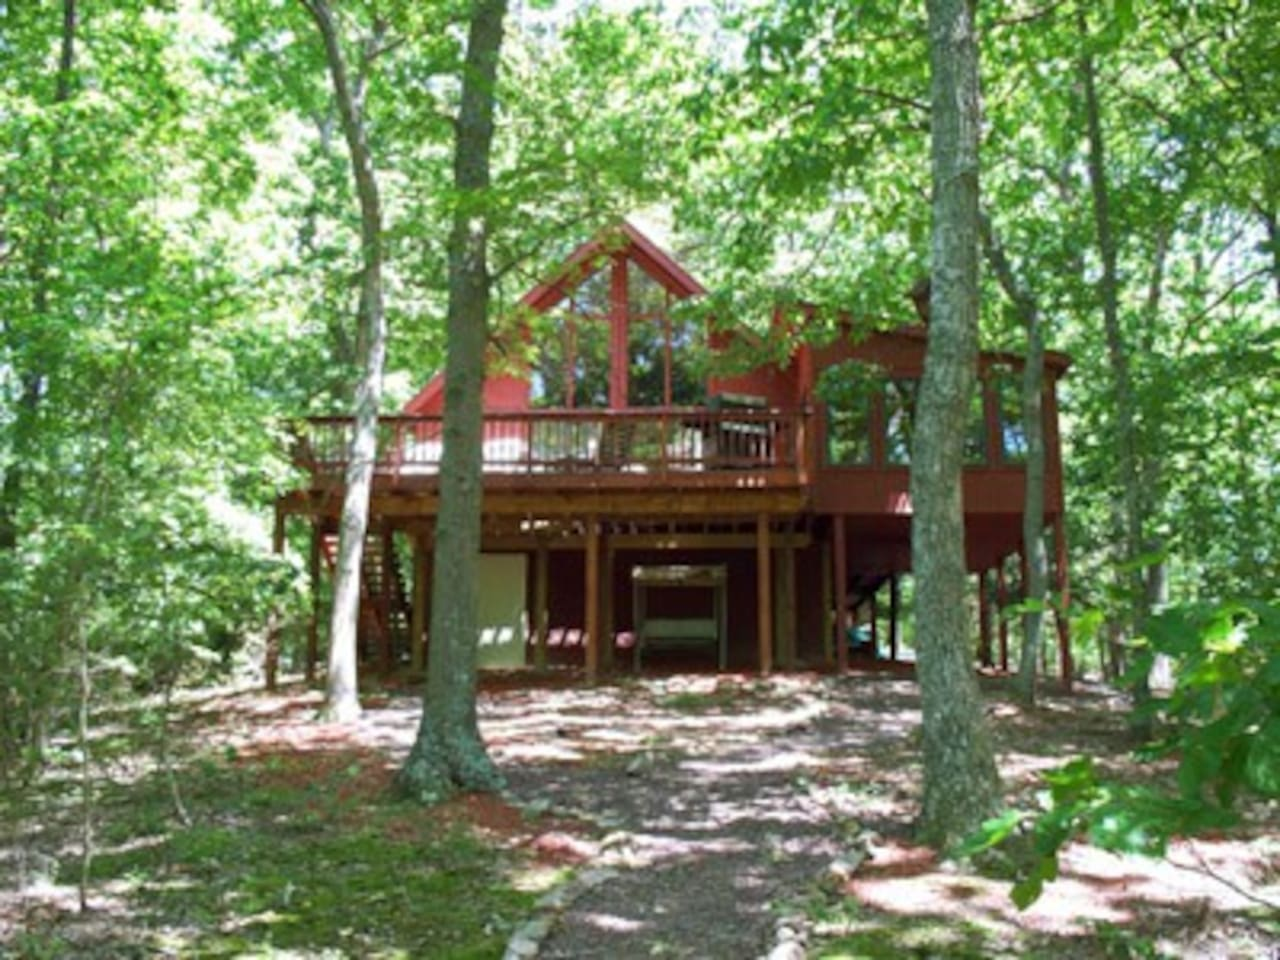 All Season's Retreat is located near Berkeley Springs, West Virginia.  Nestled in the Woods Resort area. Golf course views, resort amenities available.